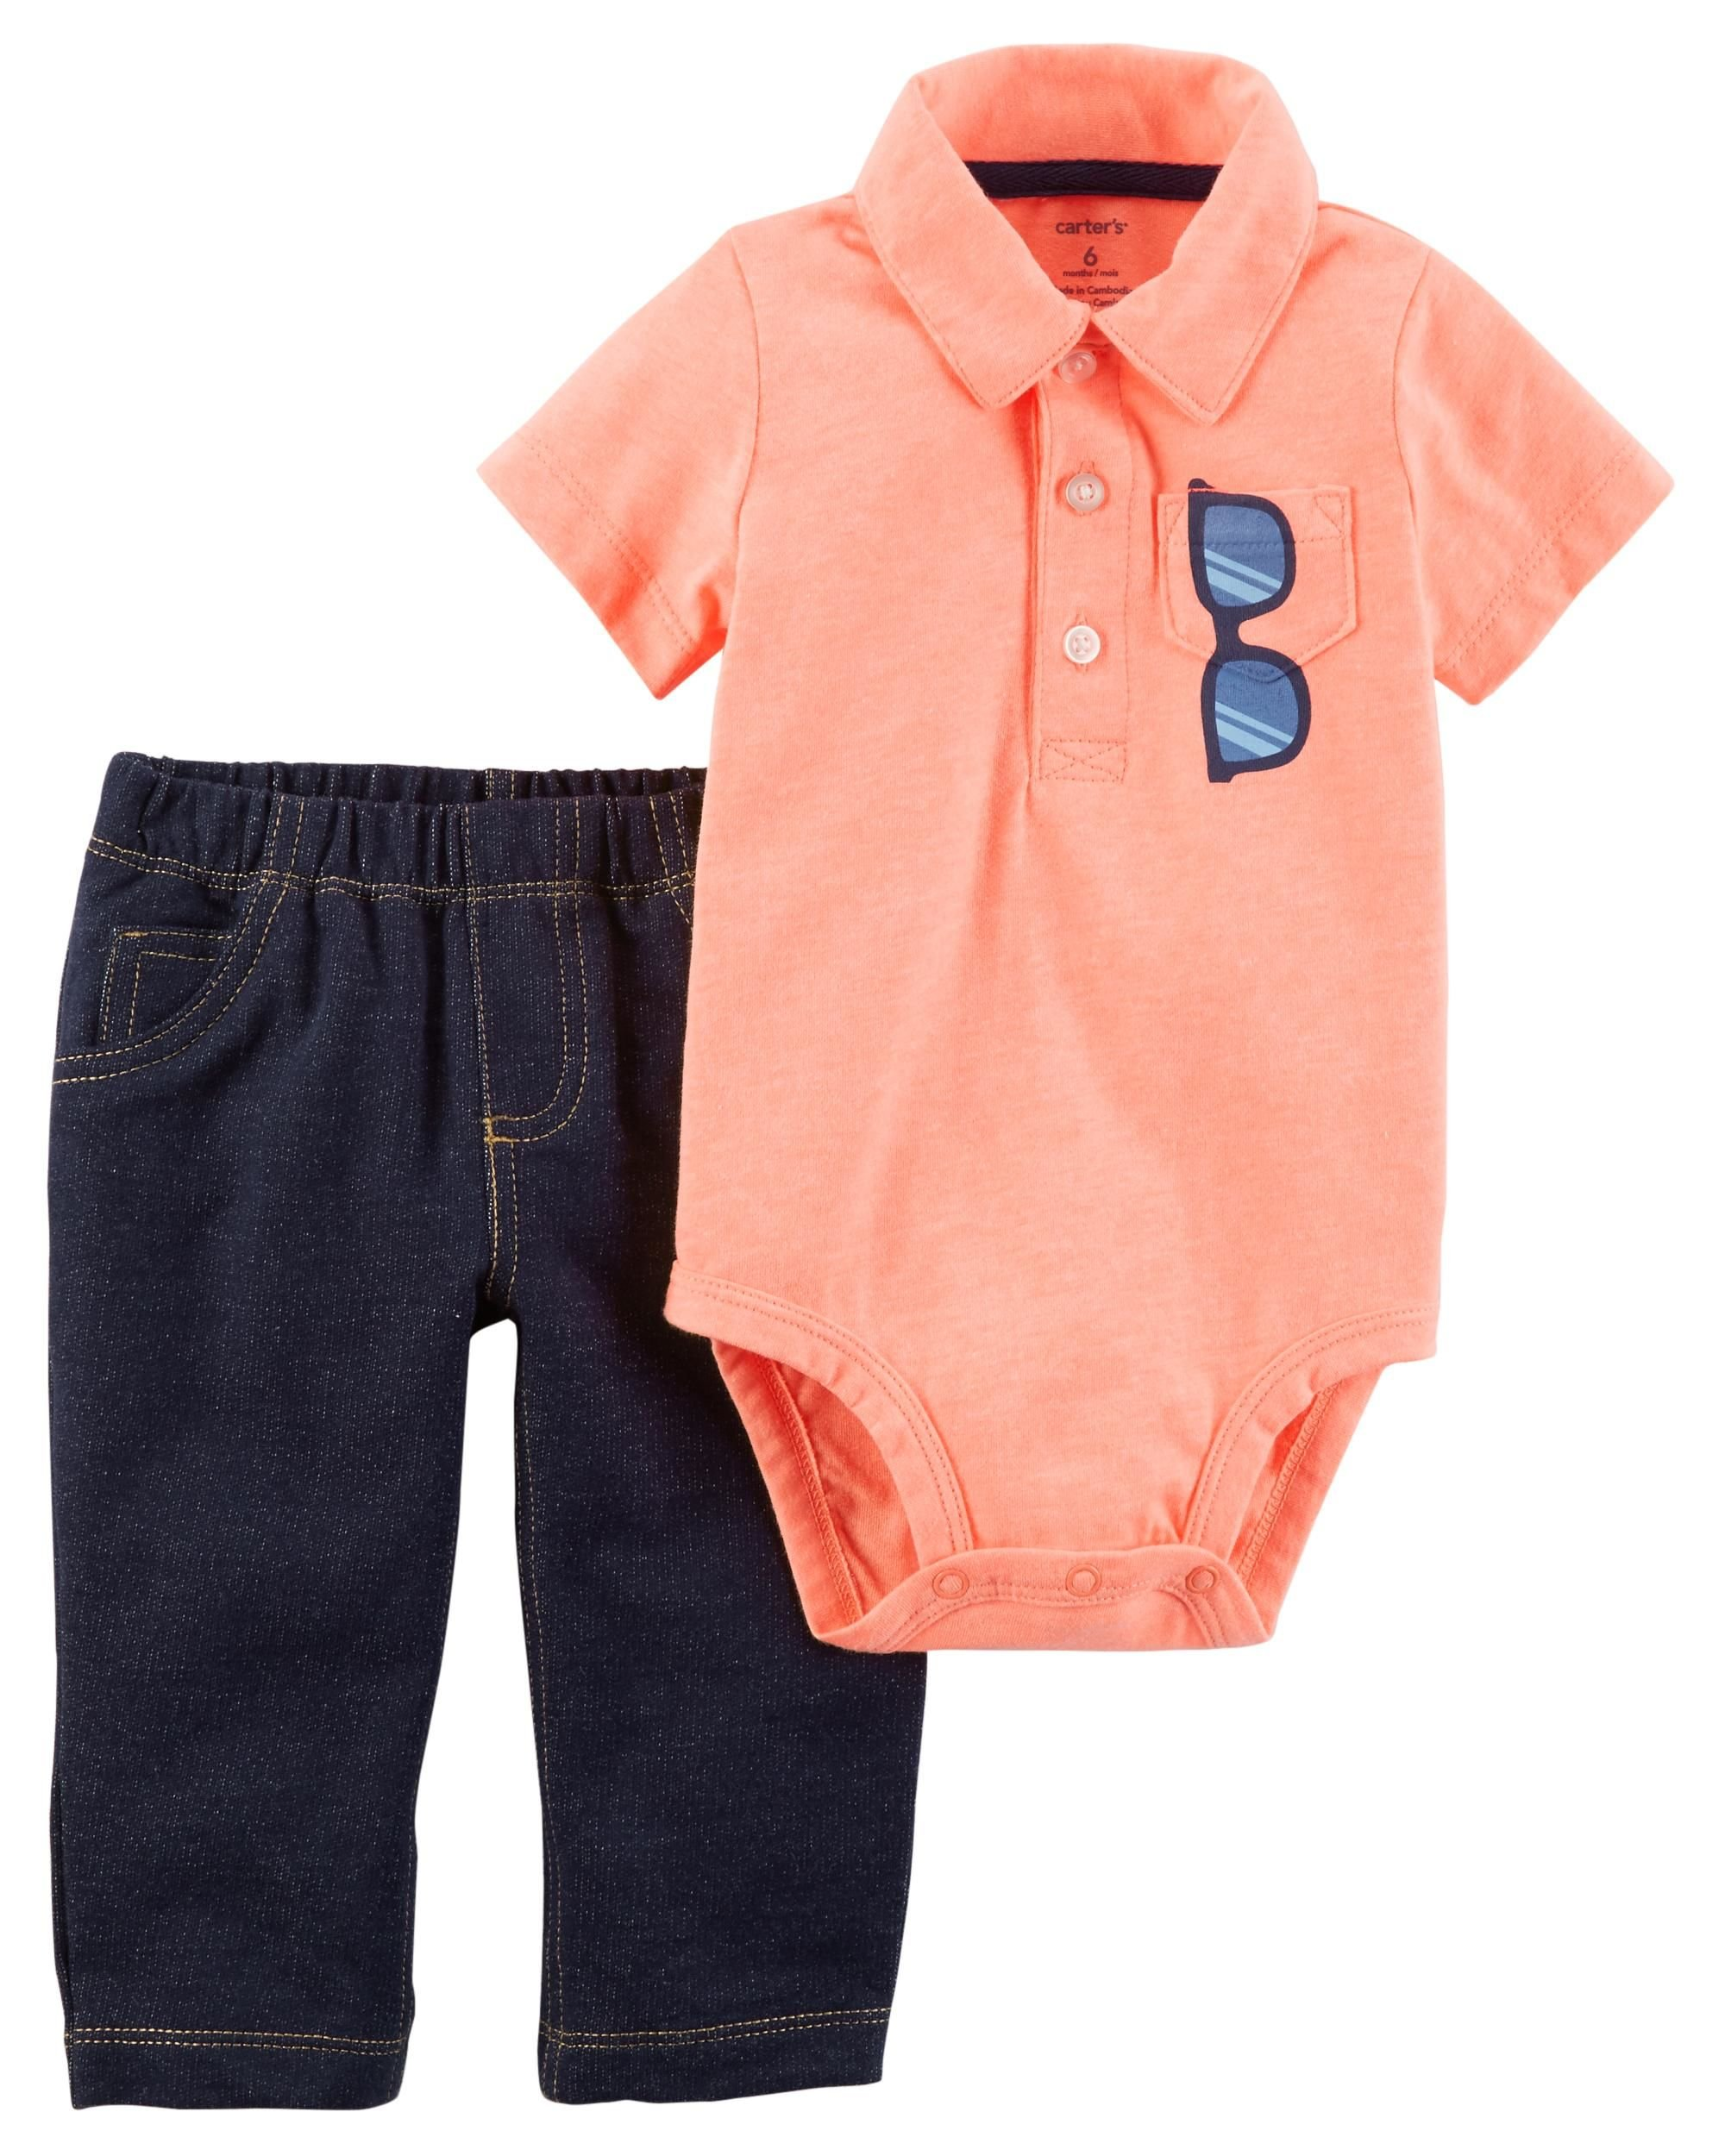 Carter's Baby Boys' 2 Piece Neon Sunglass Bodysuit and Pants Set 3 Months